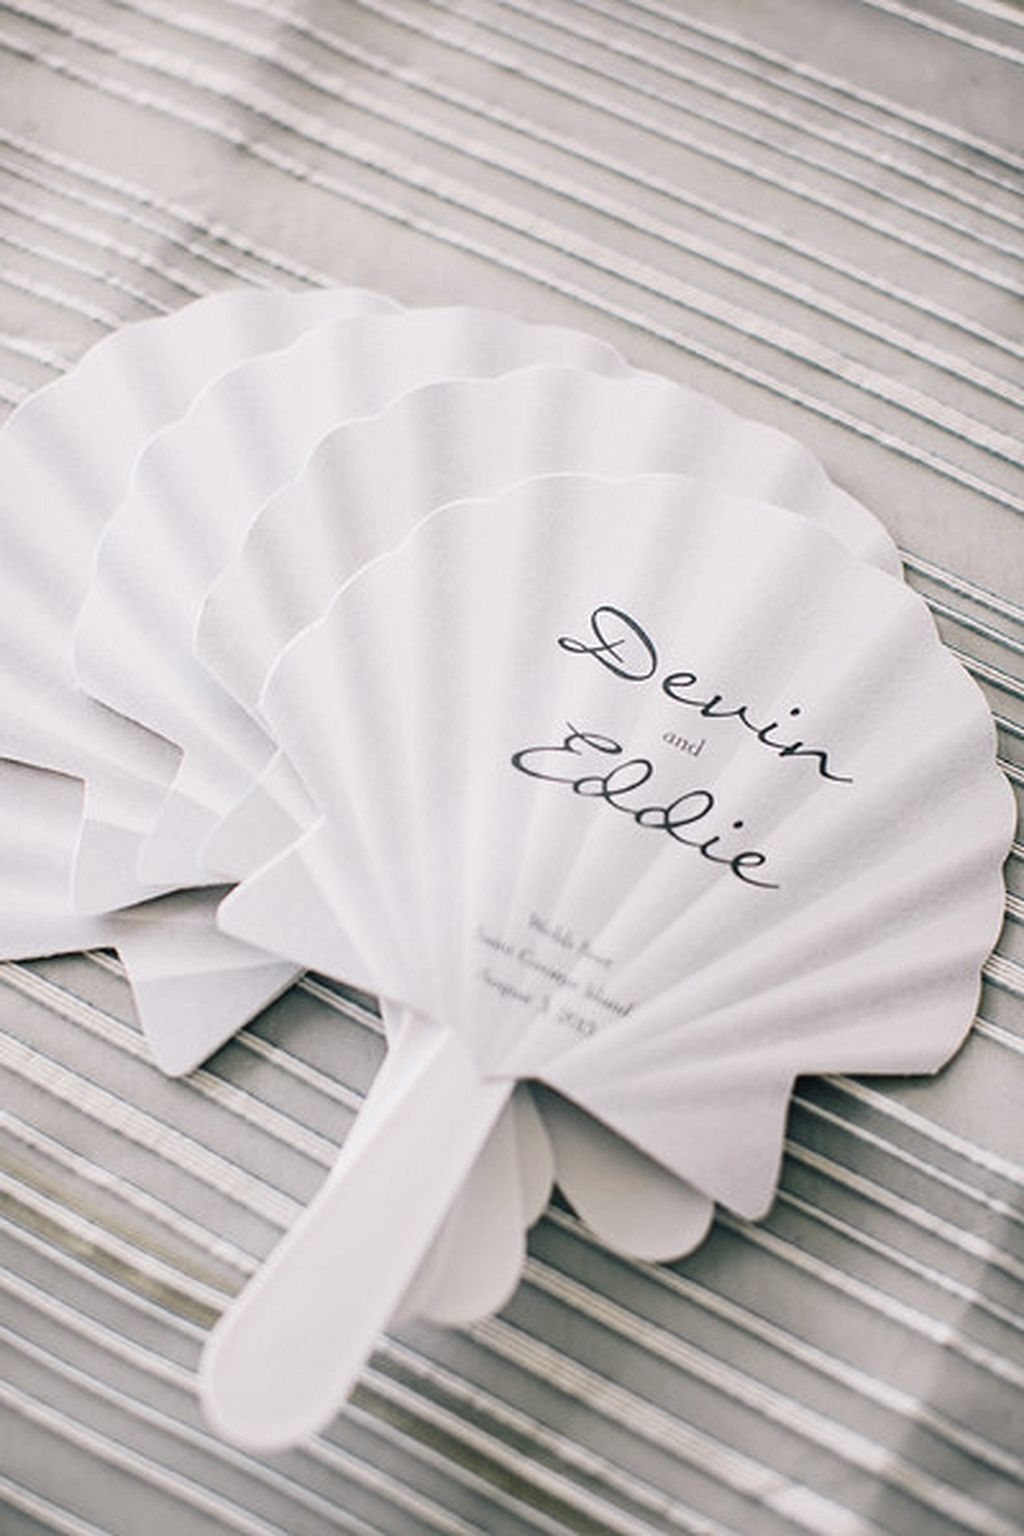 80 beach wedding ideas 12 | Weddings, Favors and Wedding